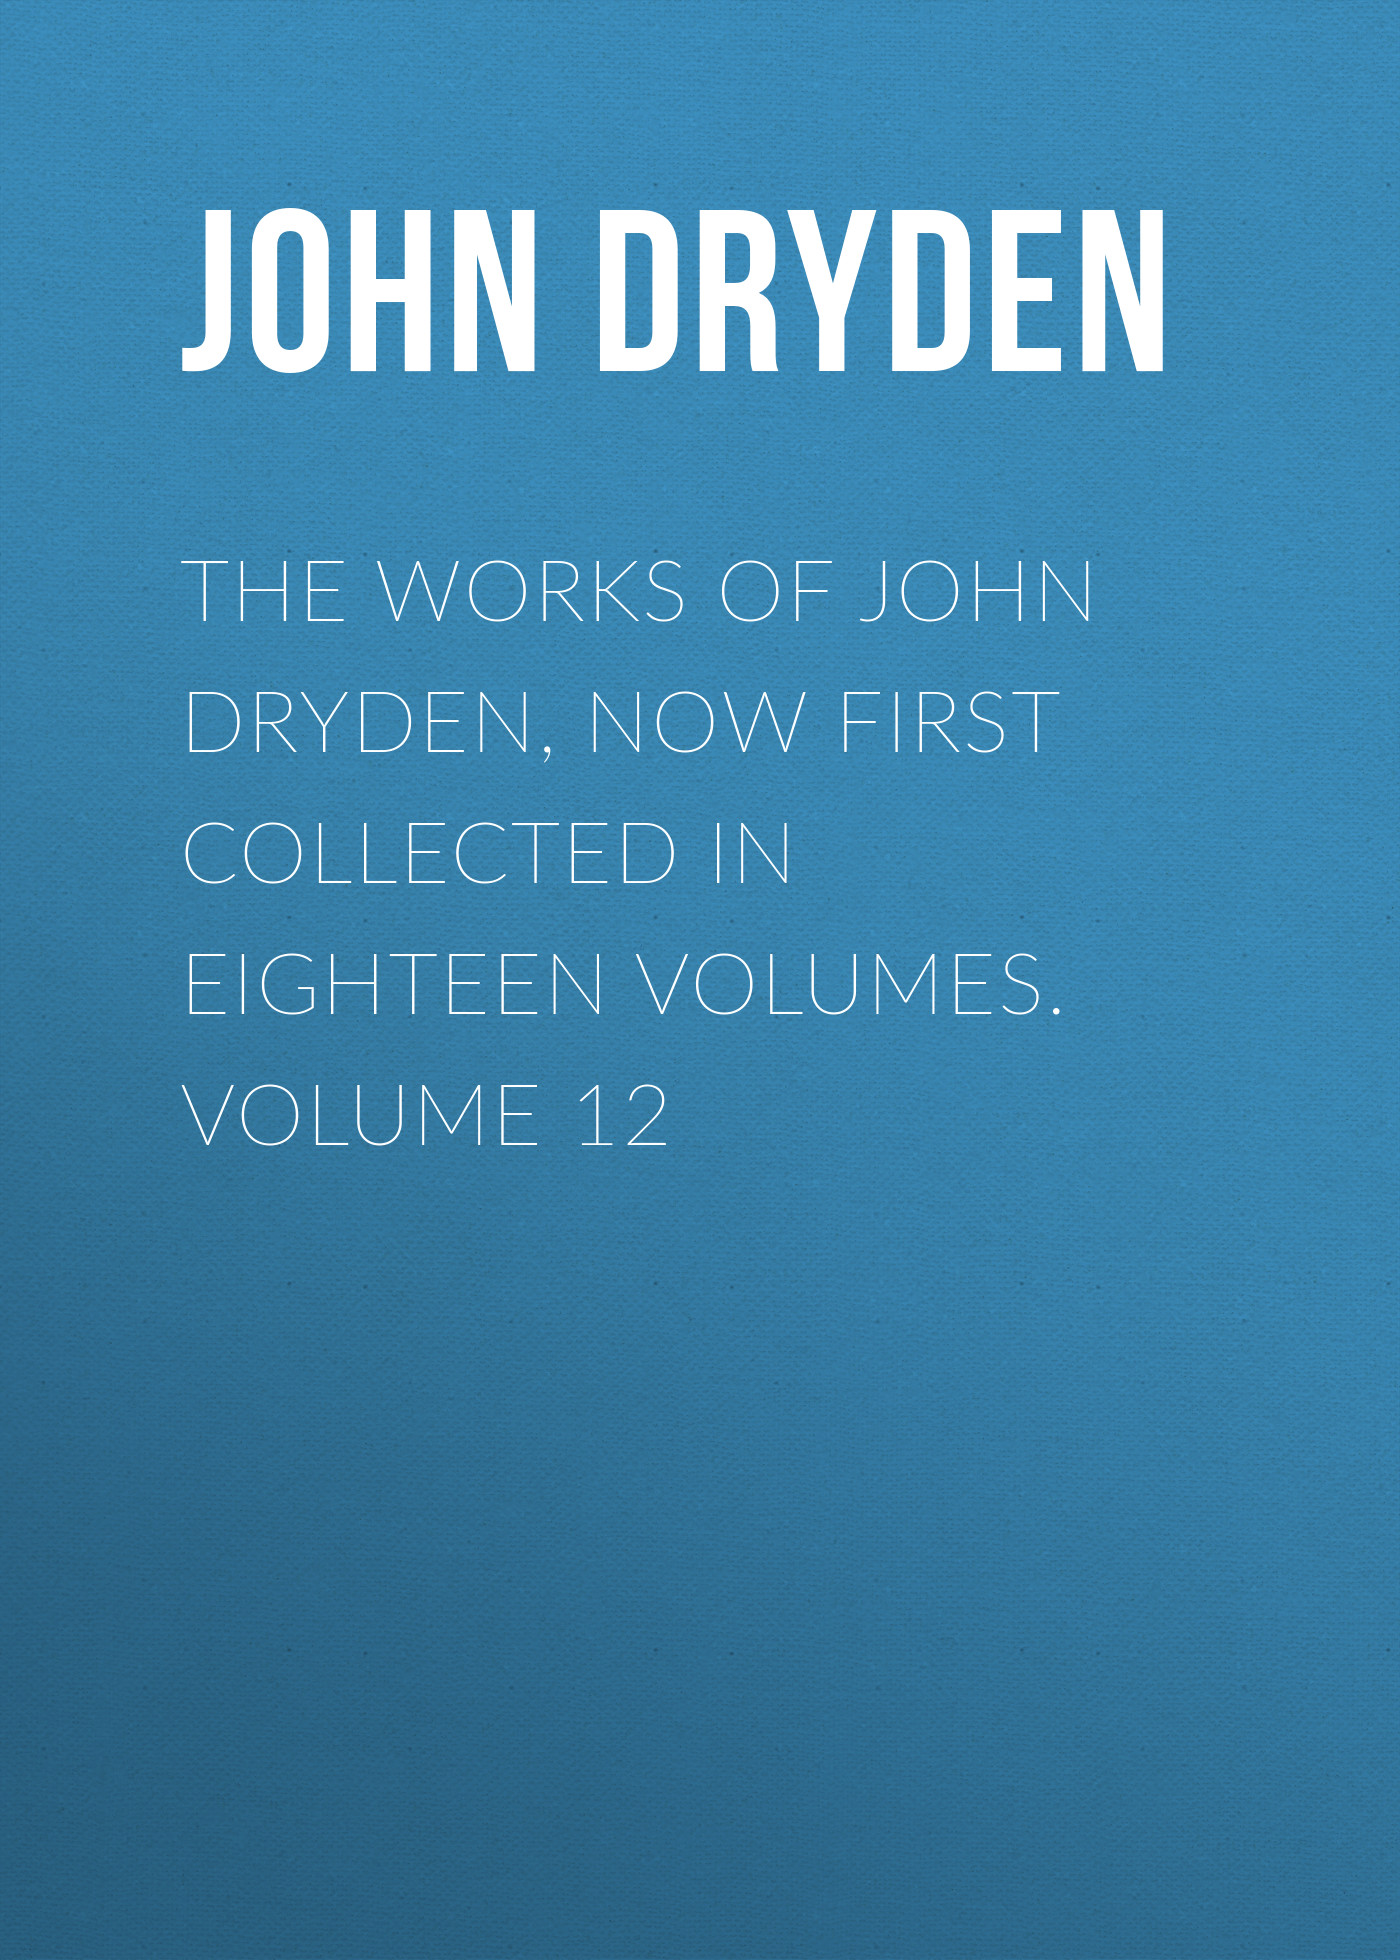 John Dryden The Works of John Dryden, now first collected in eighteen volumes. Volume 12